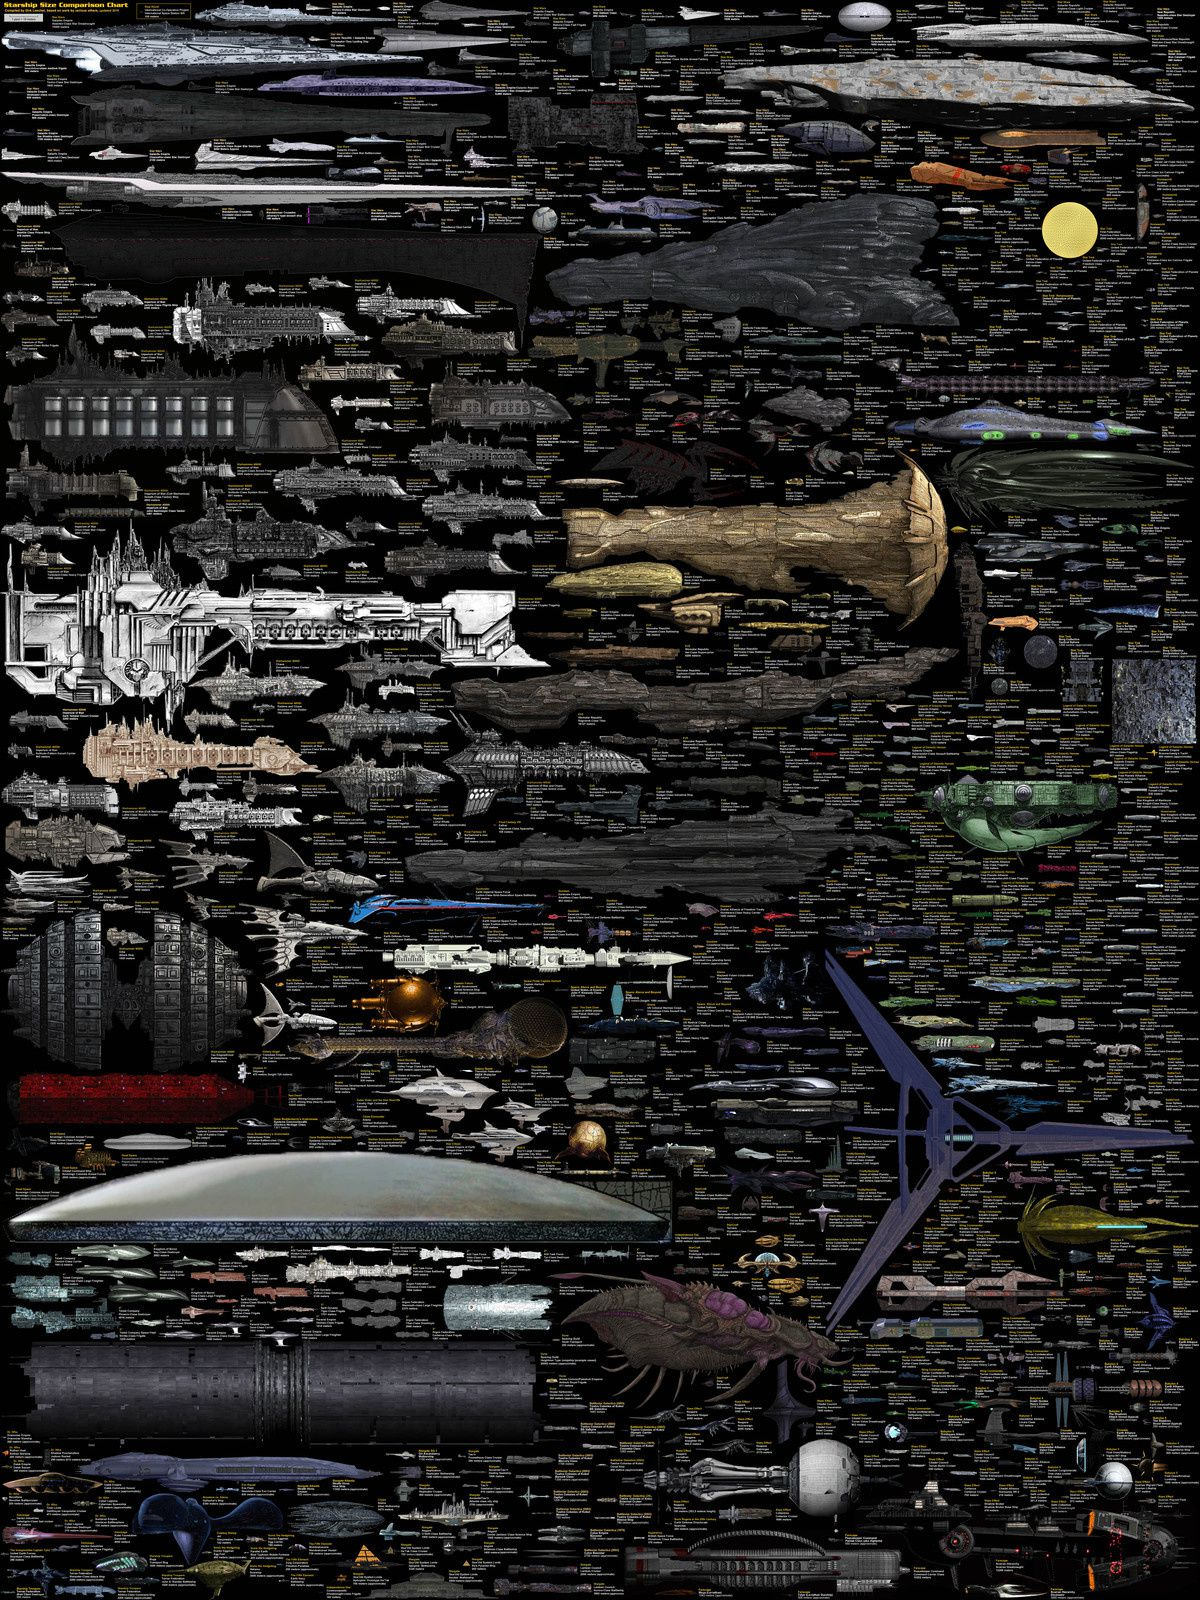 Size Comparison – Science Fiction spaceships